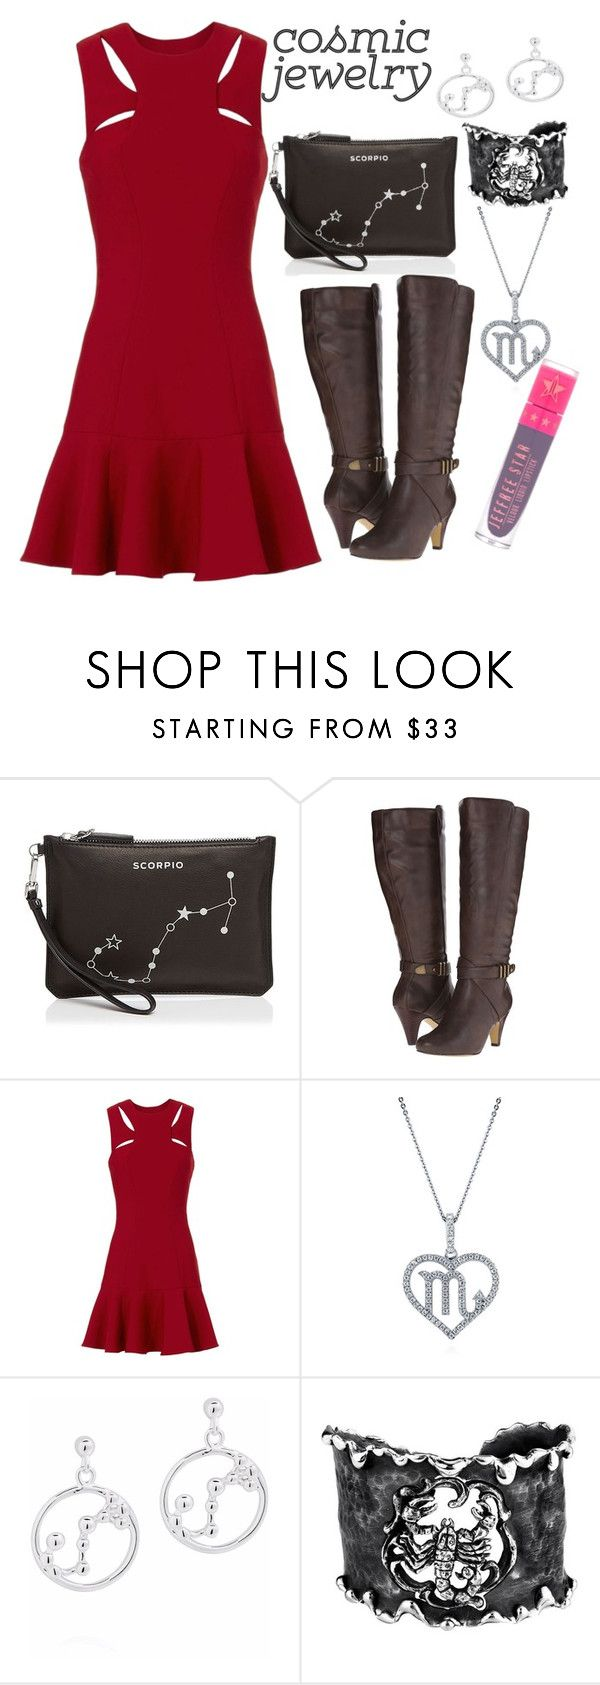 """""""Scorpion"""" by pao-historias-de-closet on Polyvore featuring Etienne Aigner, Bella-Vita, Cinq à Sept, BERRICLE, Michael Barin, Jeffree Star, Boots, dress, woman and cosmicjewelry"""